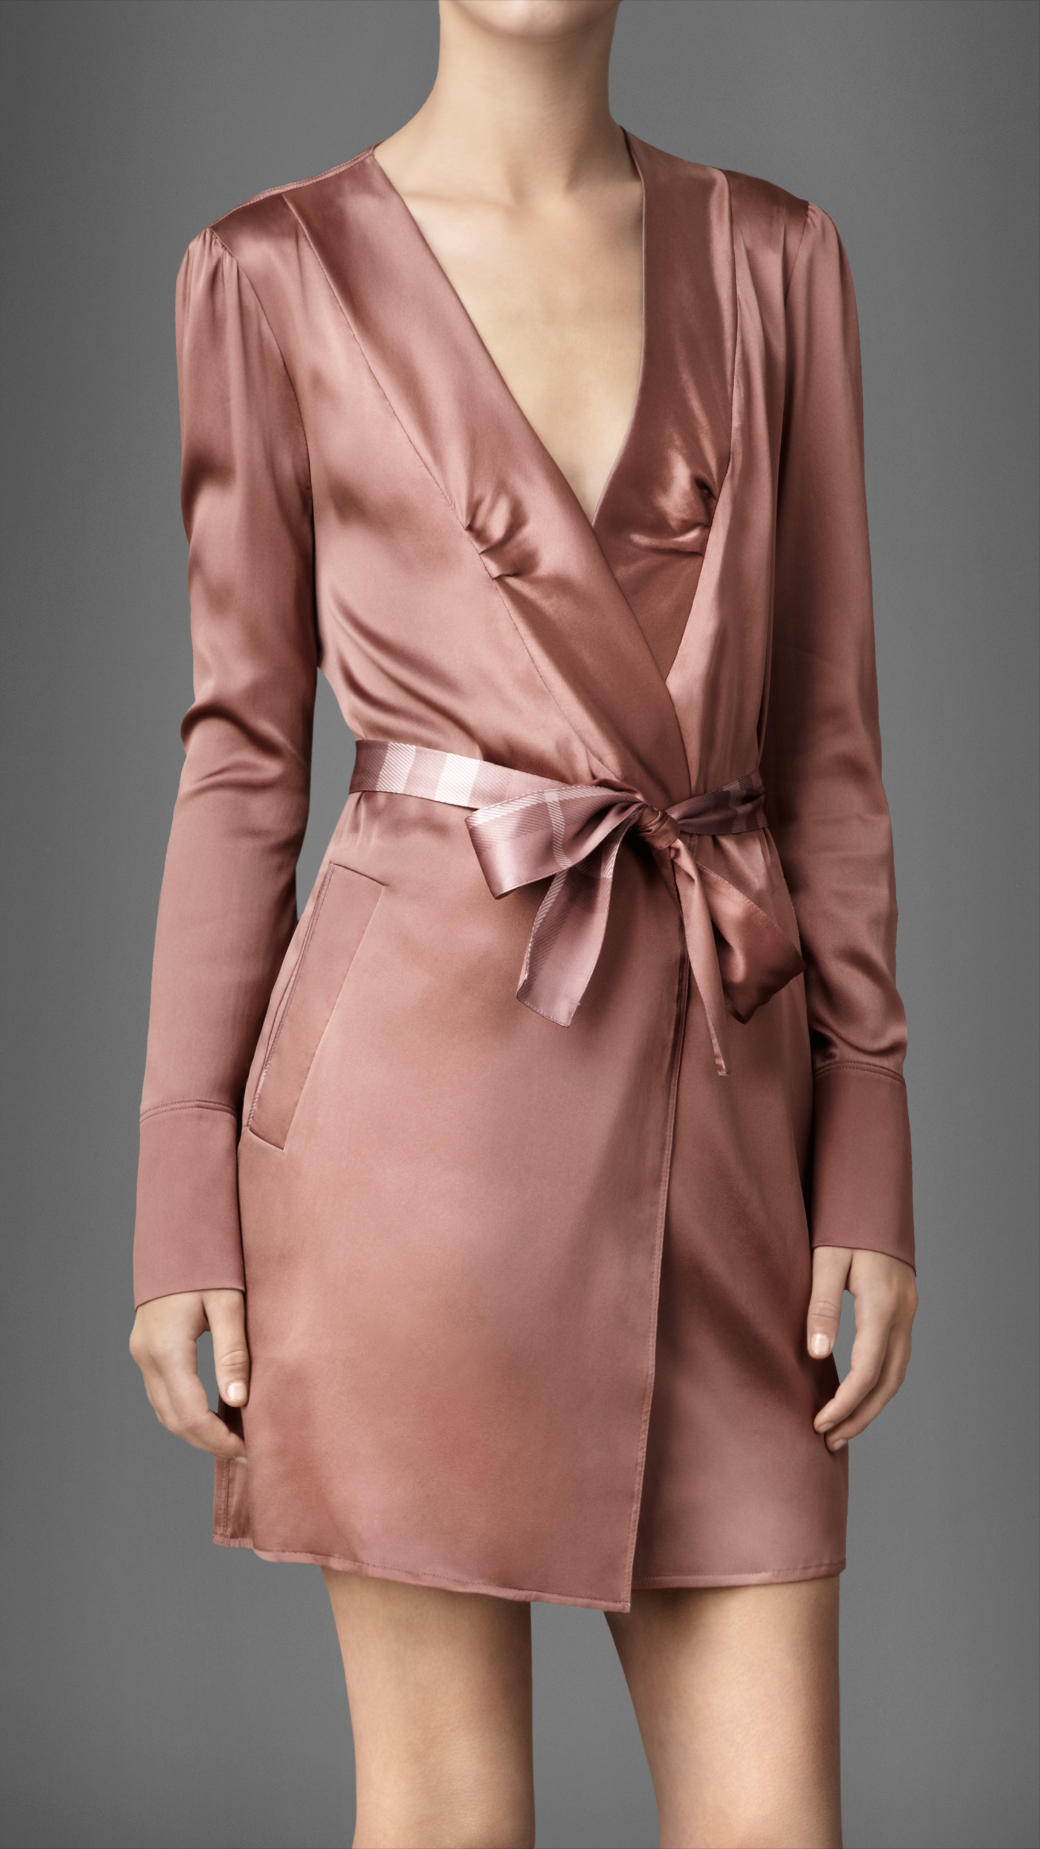 Lyst - Burberry Stretch Silk Dressing Gown in Pink